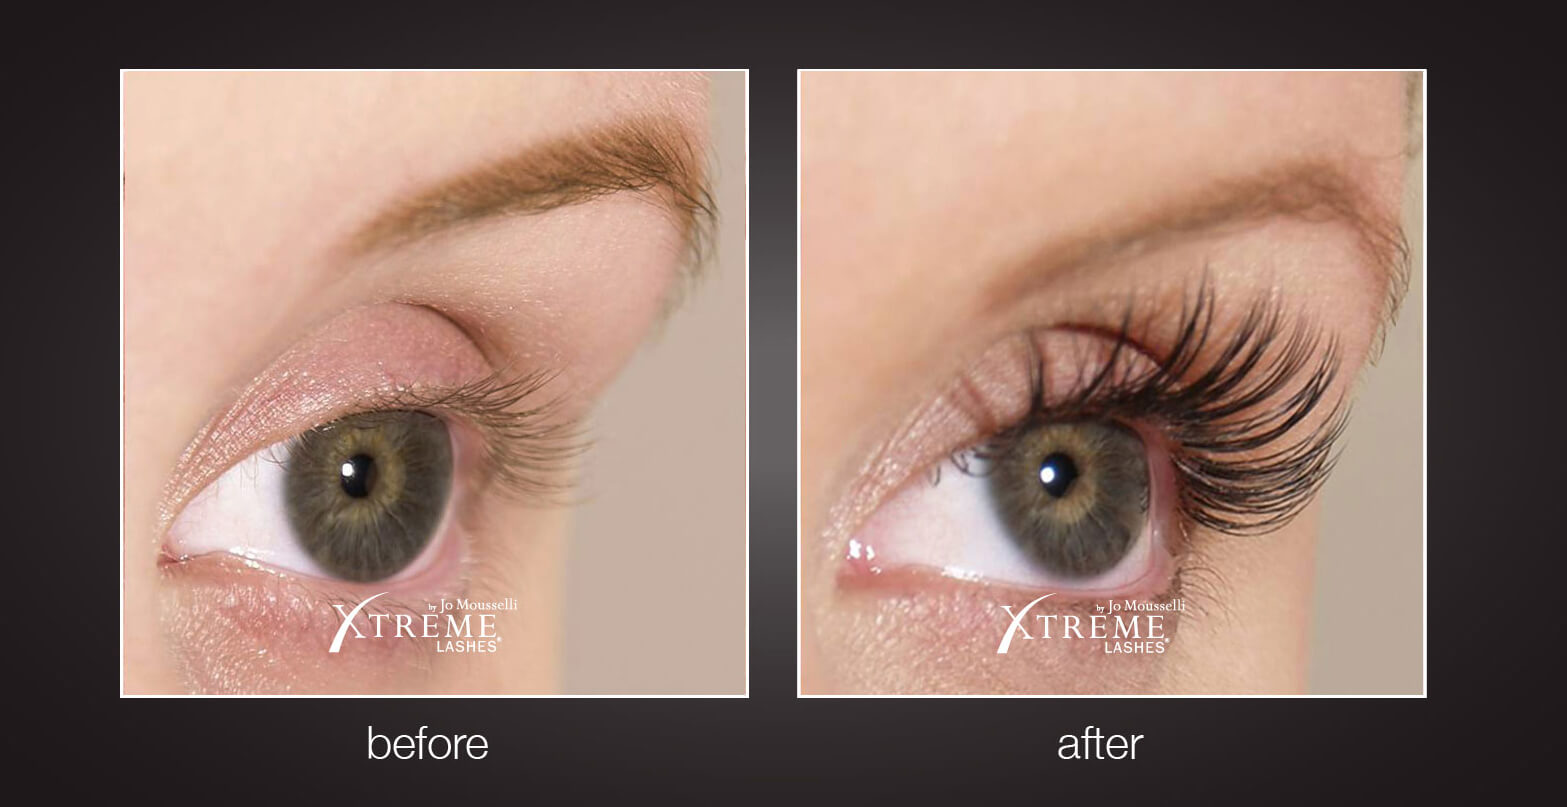 d3ba5bb04b9 Xtreme Lashes® - Snooty Anti-Aging & Wellness